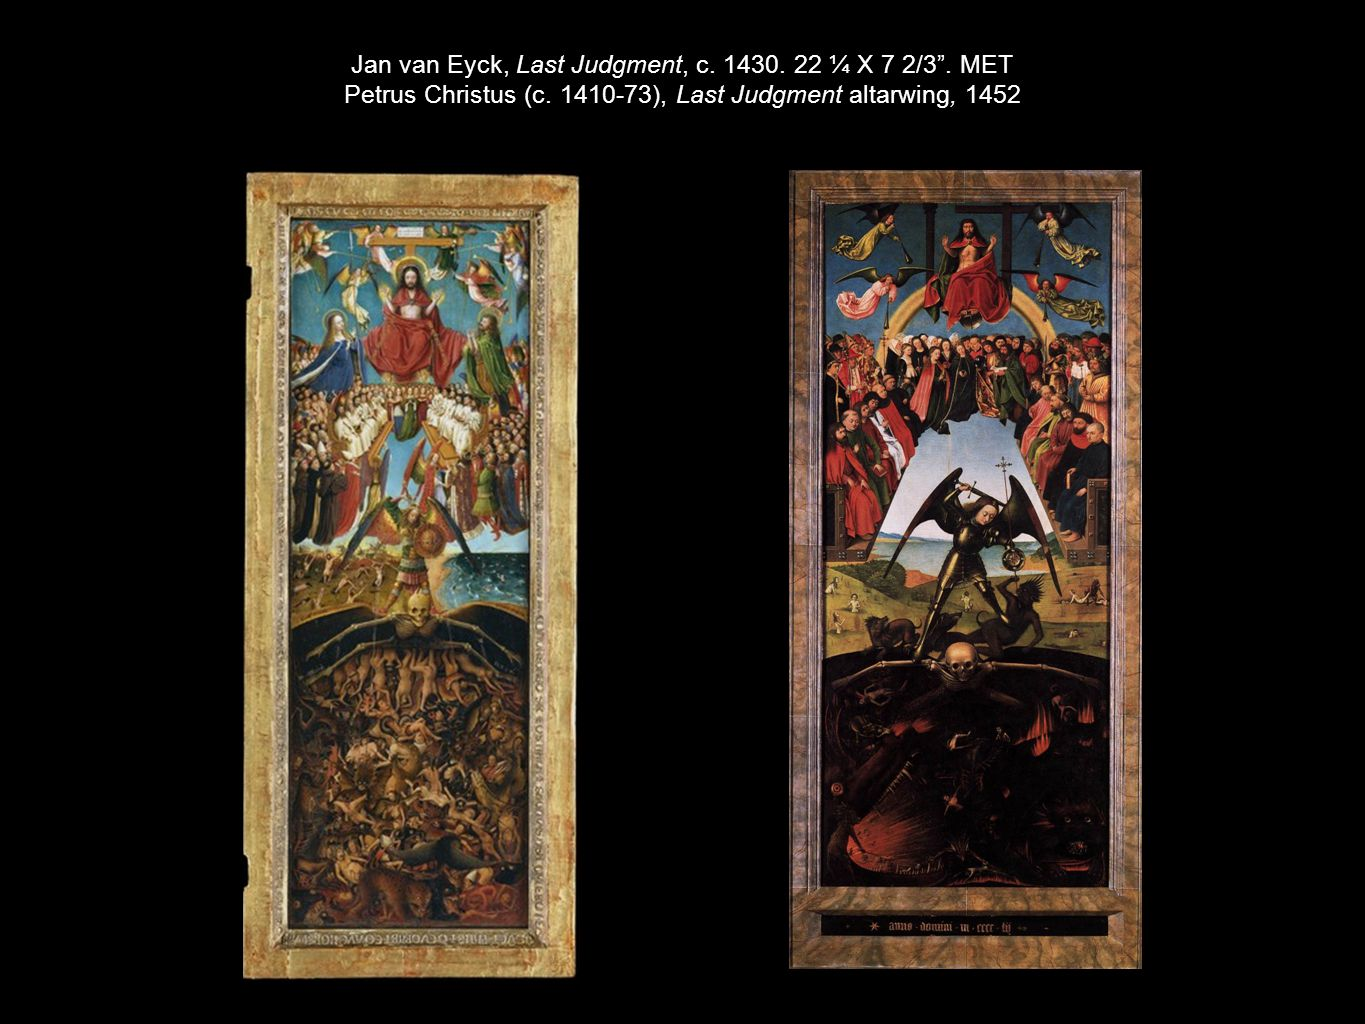 Jan van Eyck, Last Judgment, c ¼ X 7 2/3